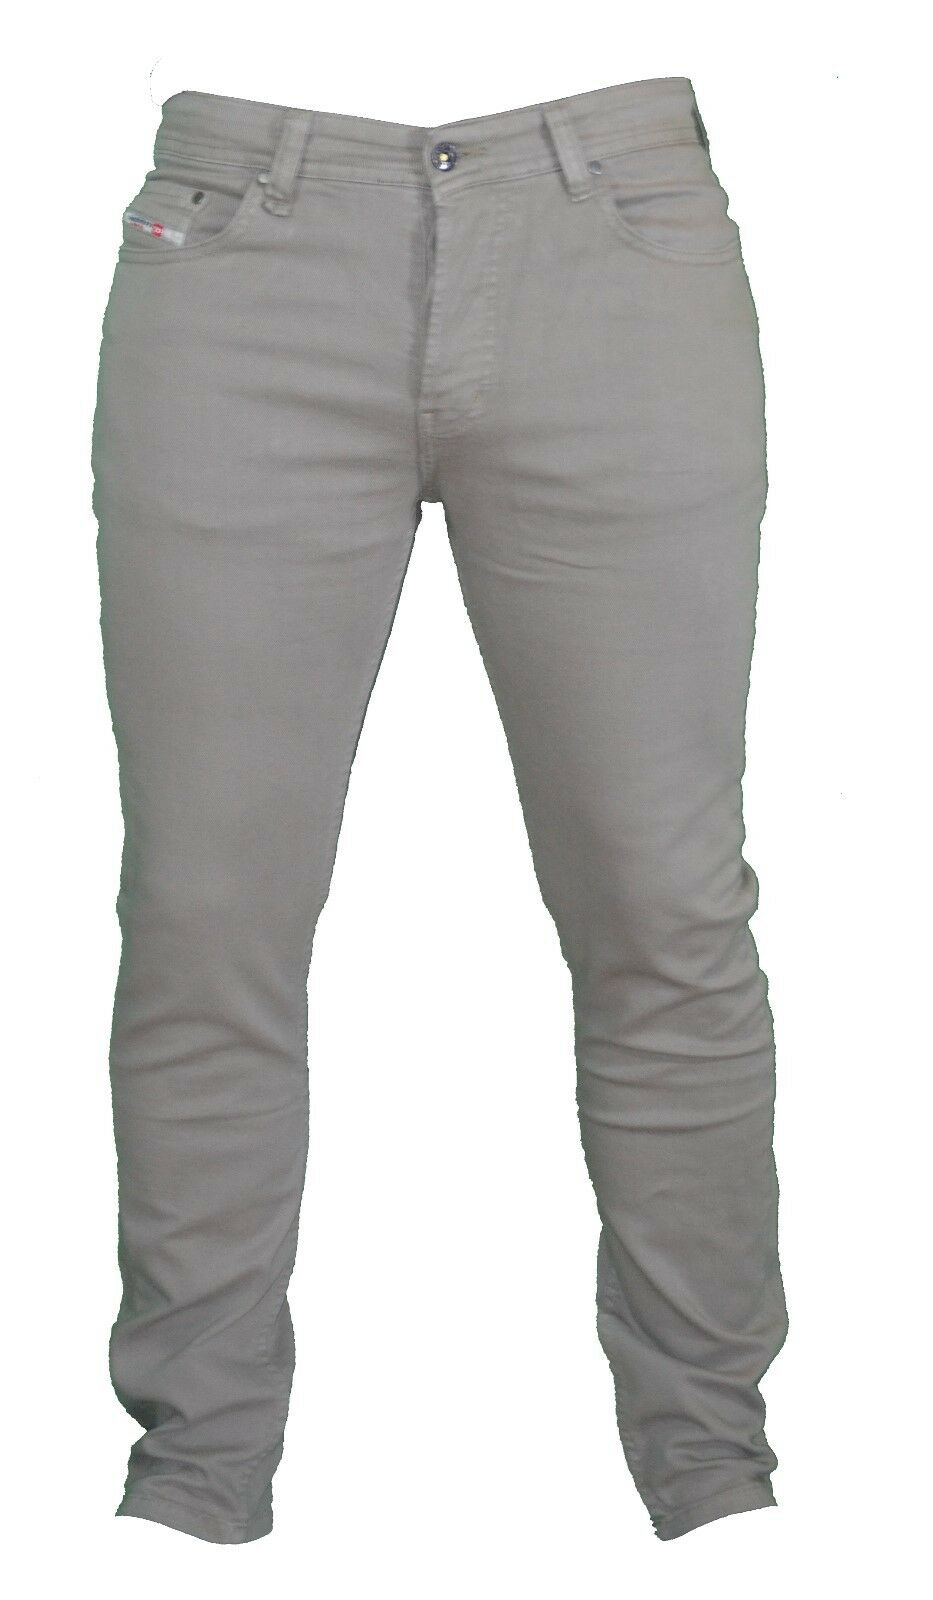 BNWT DIESEL FOR SUCCESSFUL LIVING KHAKI OLIVE CASUAL TROUSER SLIM FIT JEANS